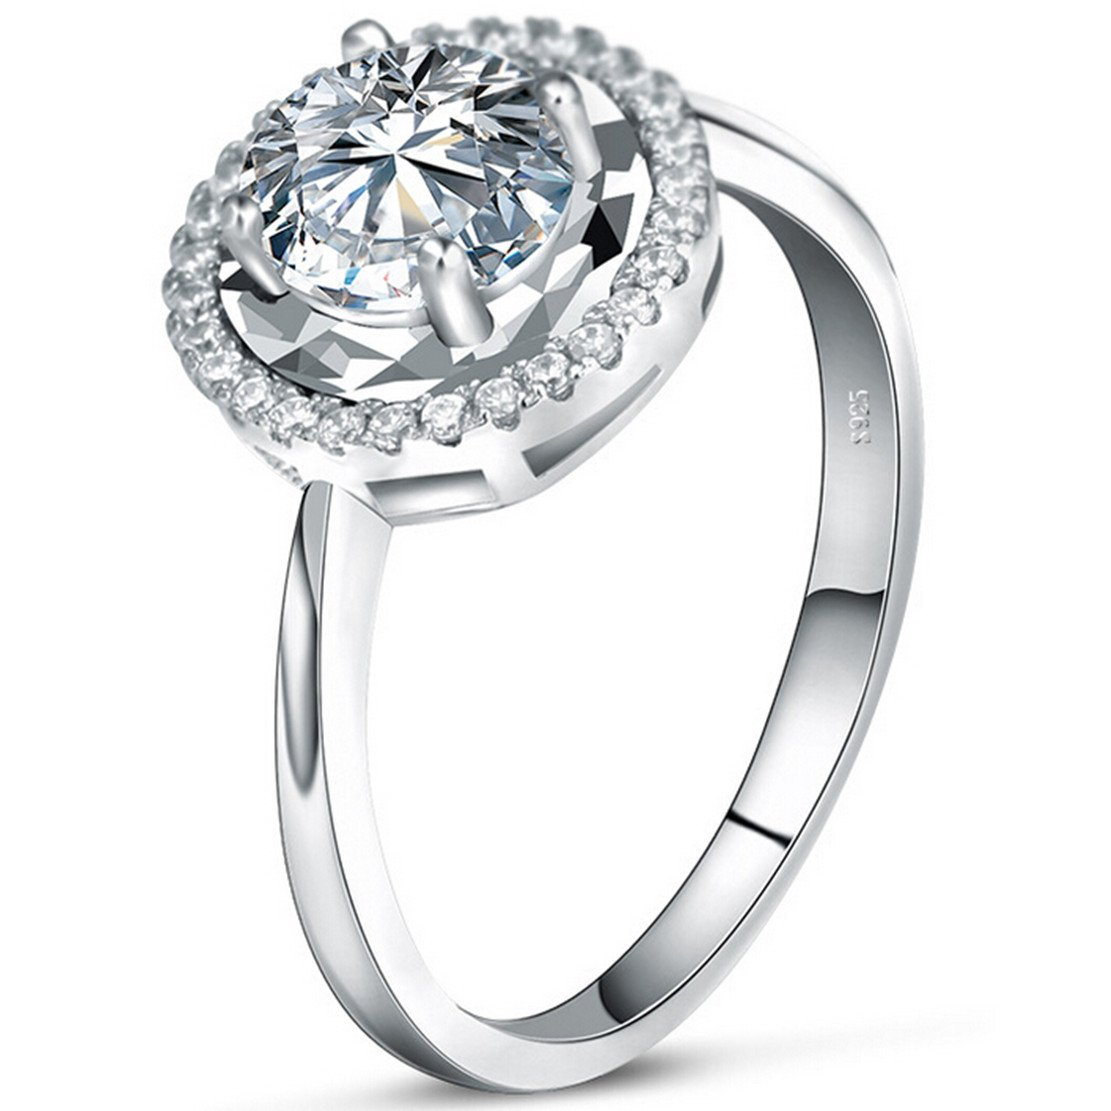 Silver Masters Women's 925 Sterling Silver Rings Highest Quality CZ Cubic Zirconia SF007